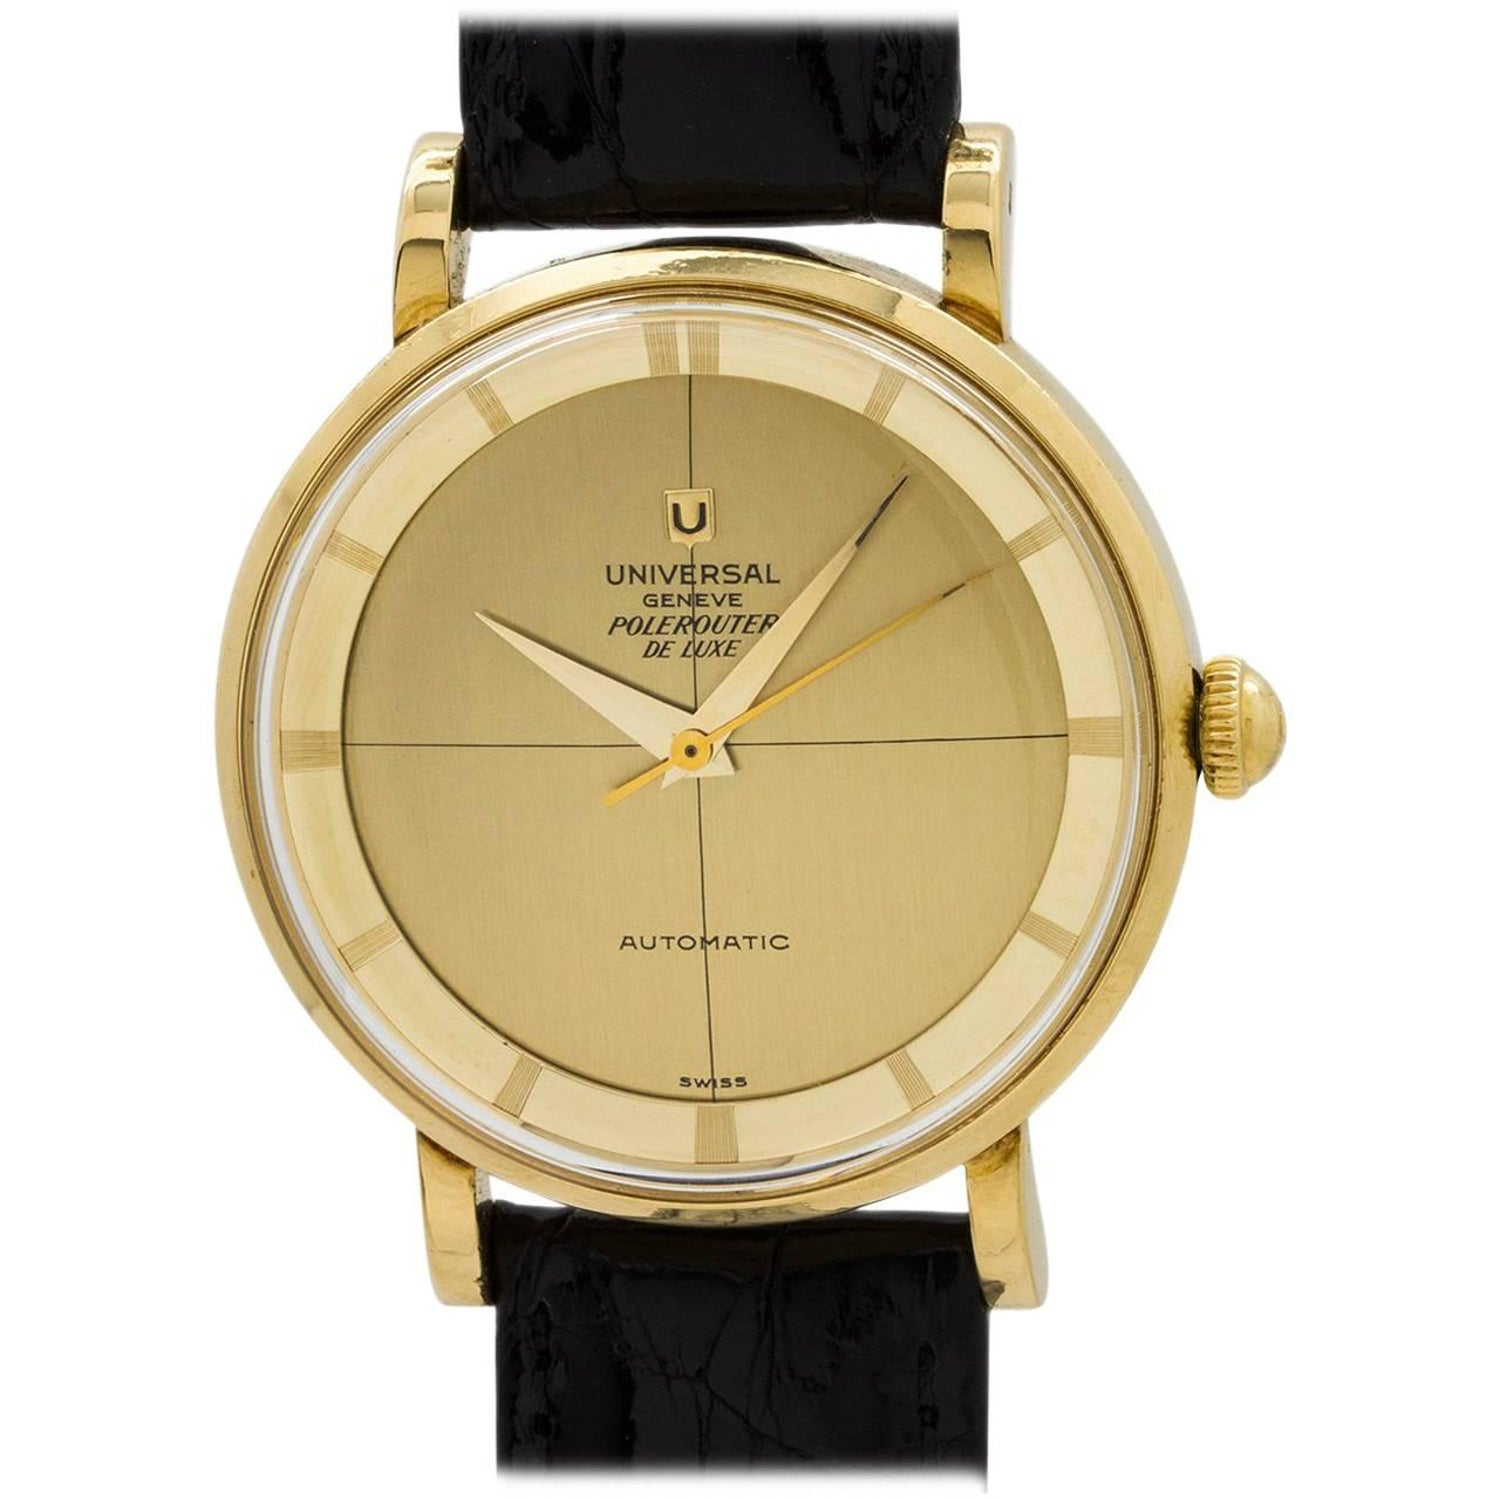 Universal Geneve Yellow Gold Pole Router Deluxe Chronometer Wrisch 1960s